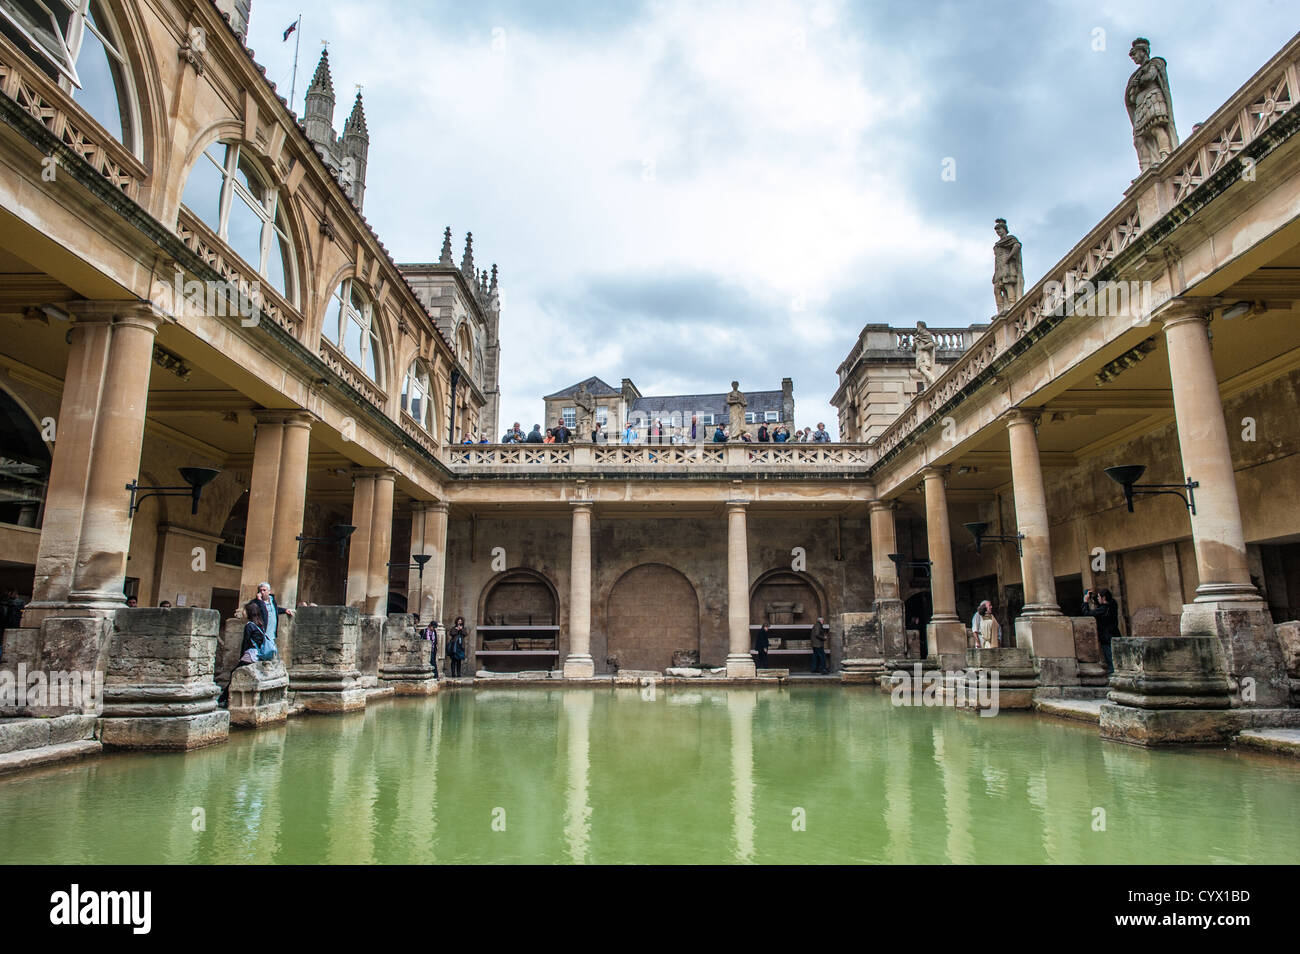 BATH, UK - A water-level view of the Roman baths in Bath, Somerset. The original location was used during the Roman - Stock Image